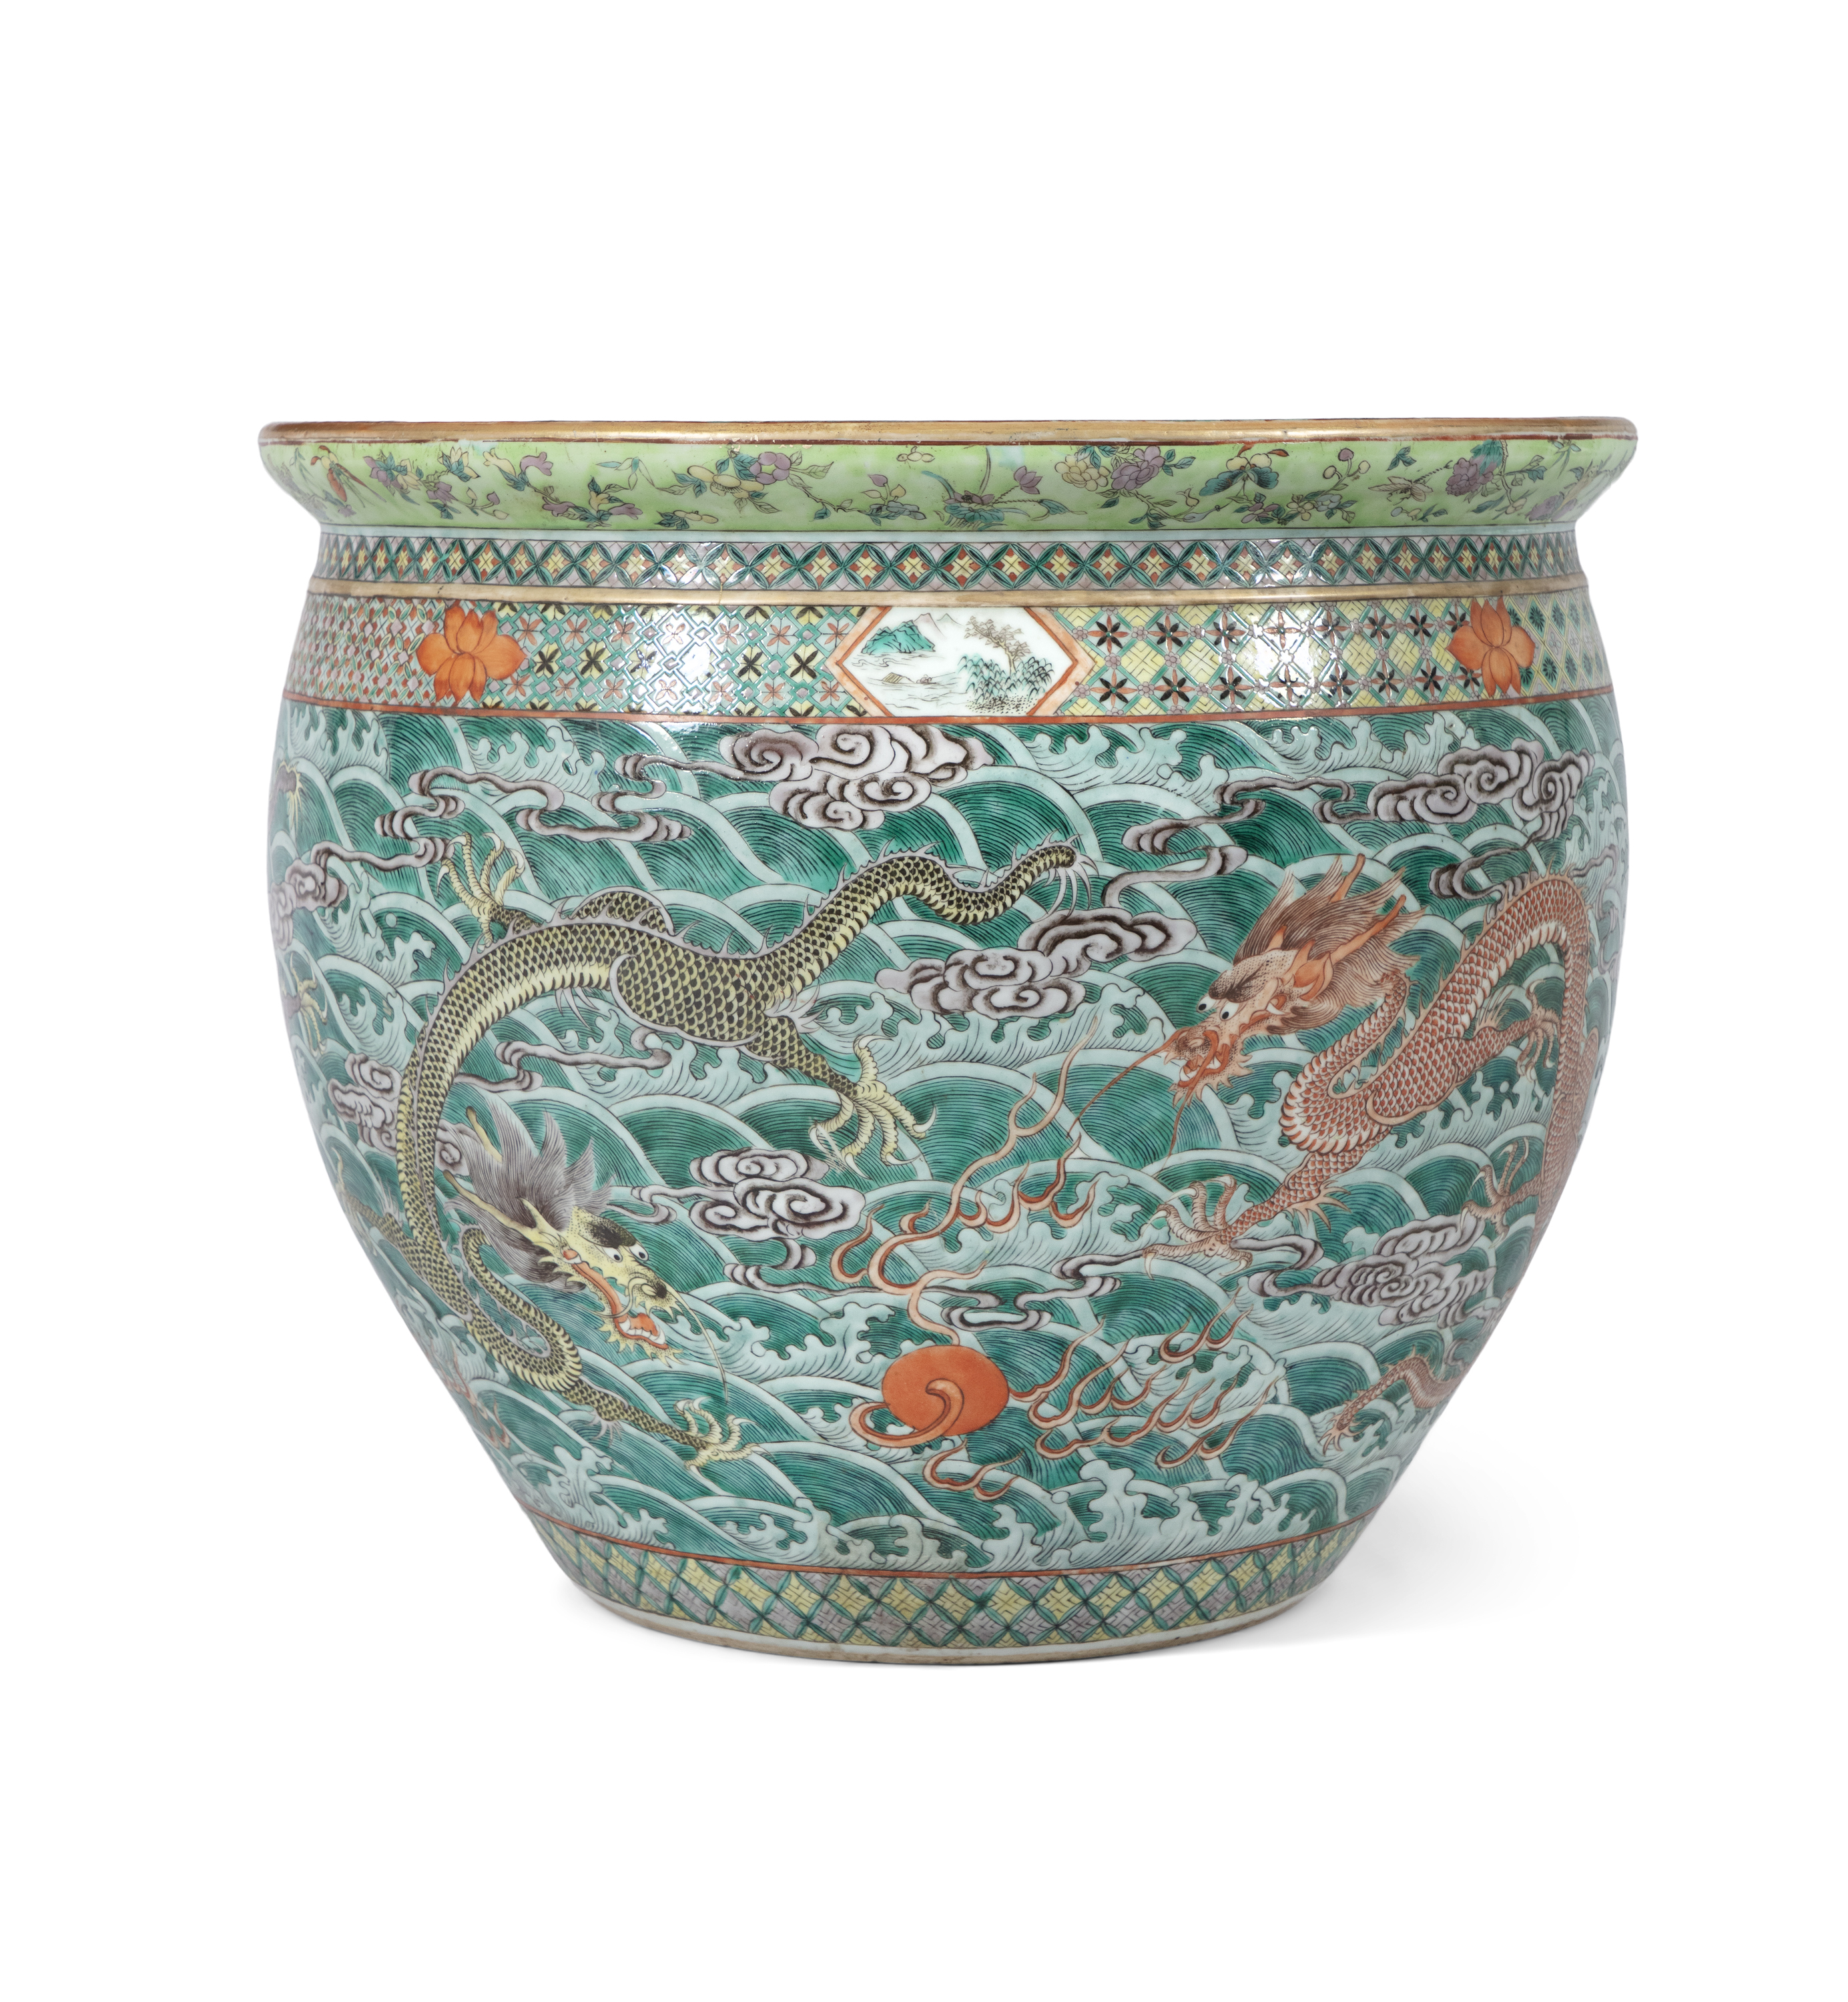 A LARGE 'FIVE-CLAWED DRAGONS' FAMILLE VERTE AQUARIUM /FISHBOWL China, Qing Dynasty, 19th century The - Image 2 of 24